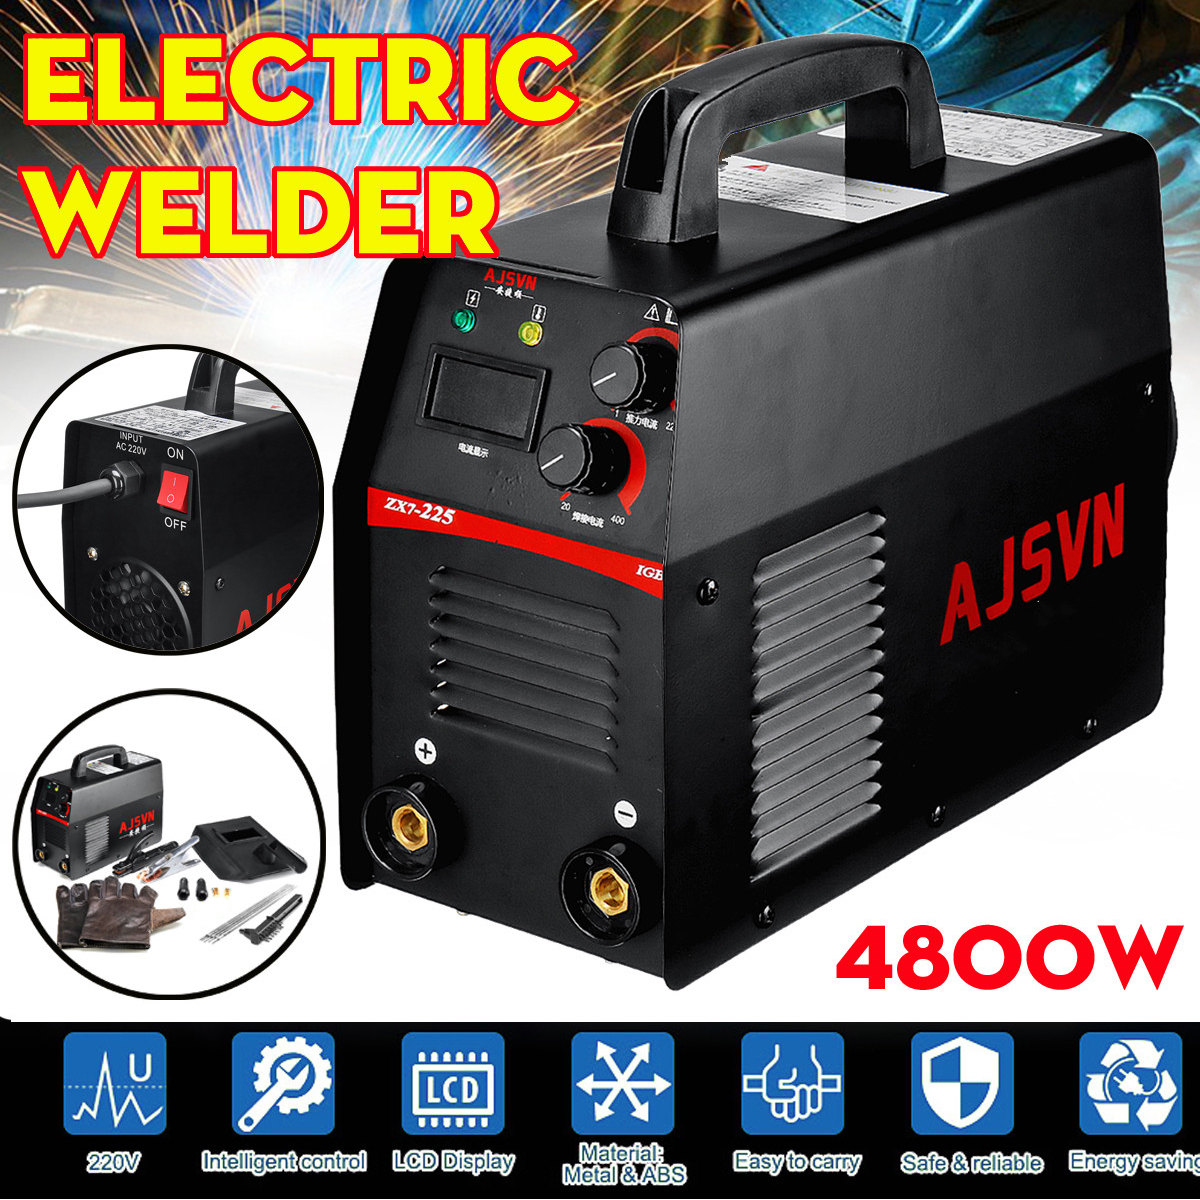 20A-225A 5000W Handheld IGBT Inverter Arc Welder-Welding Machine Digital Display Mini Portable Welding Tool20A-225A 5000W Handheld IGBT Inverter Arc Welder-Welding Machine Digital Display Mini Portable Welding Tool